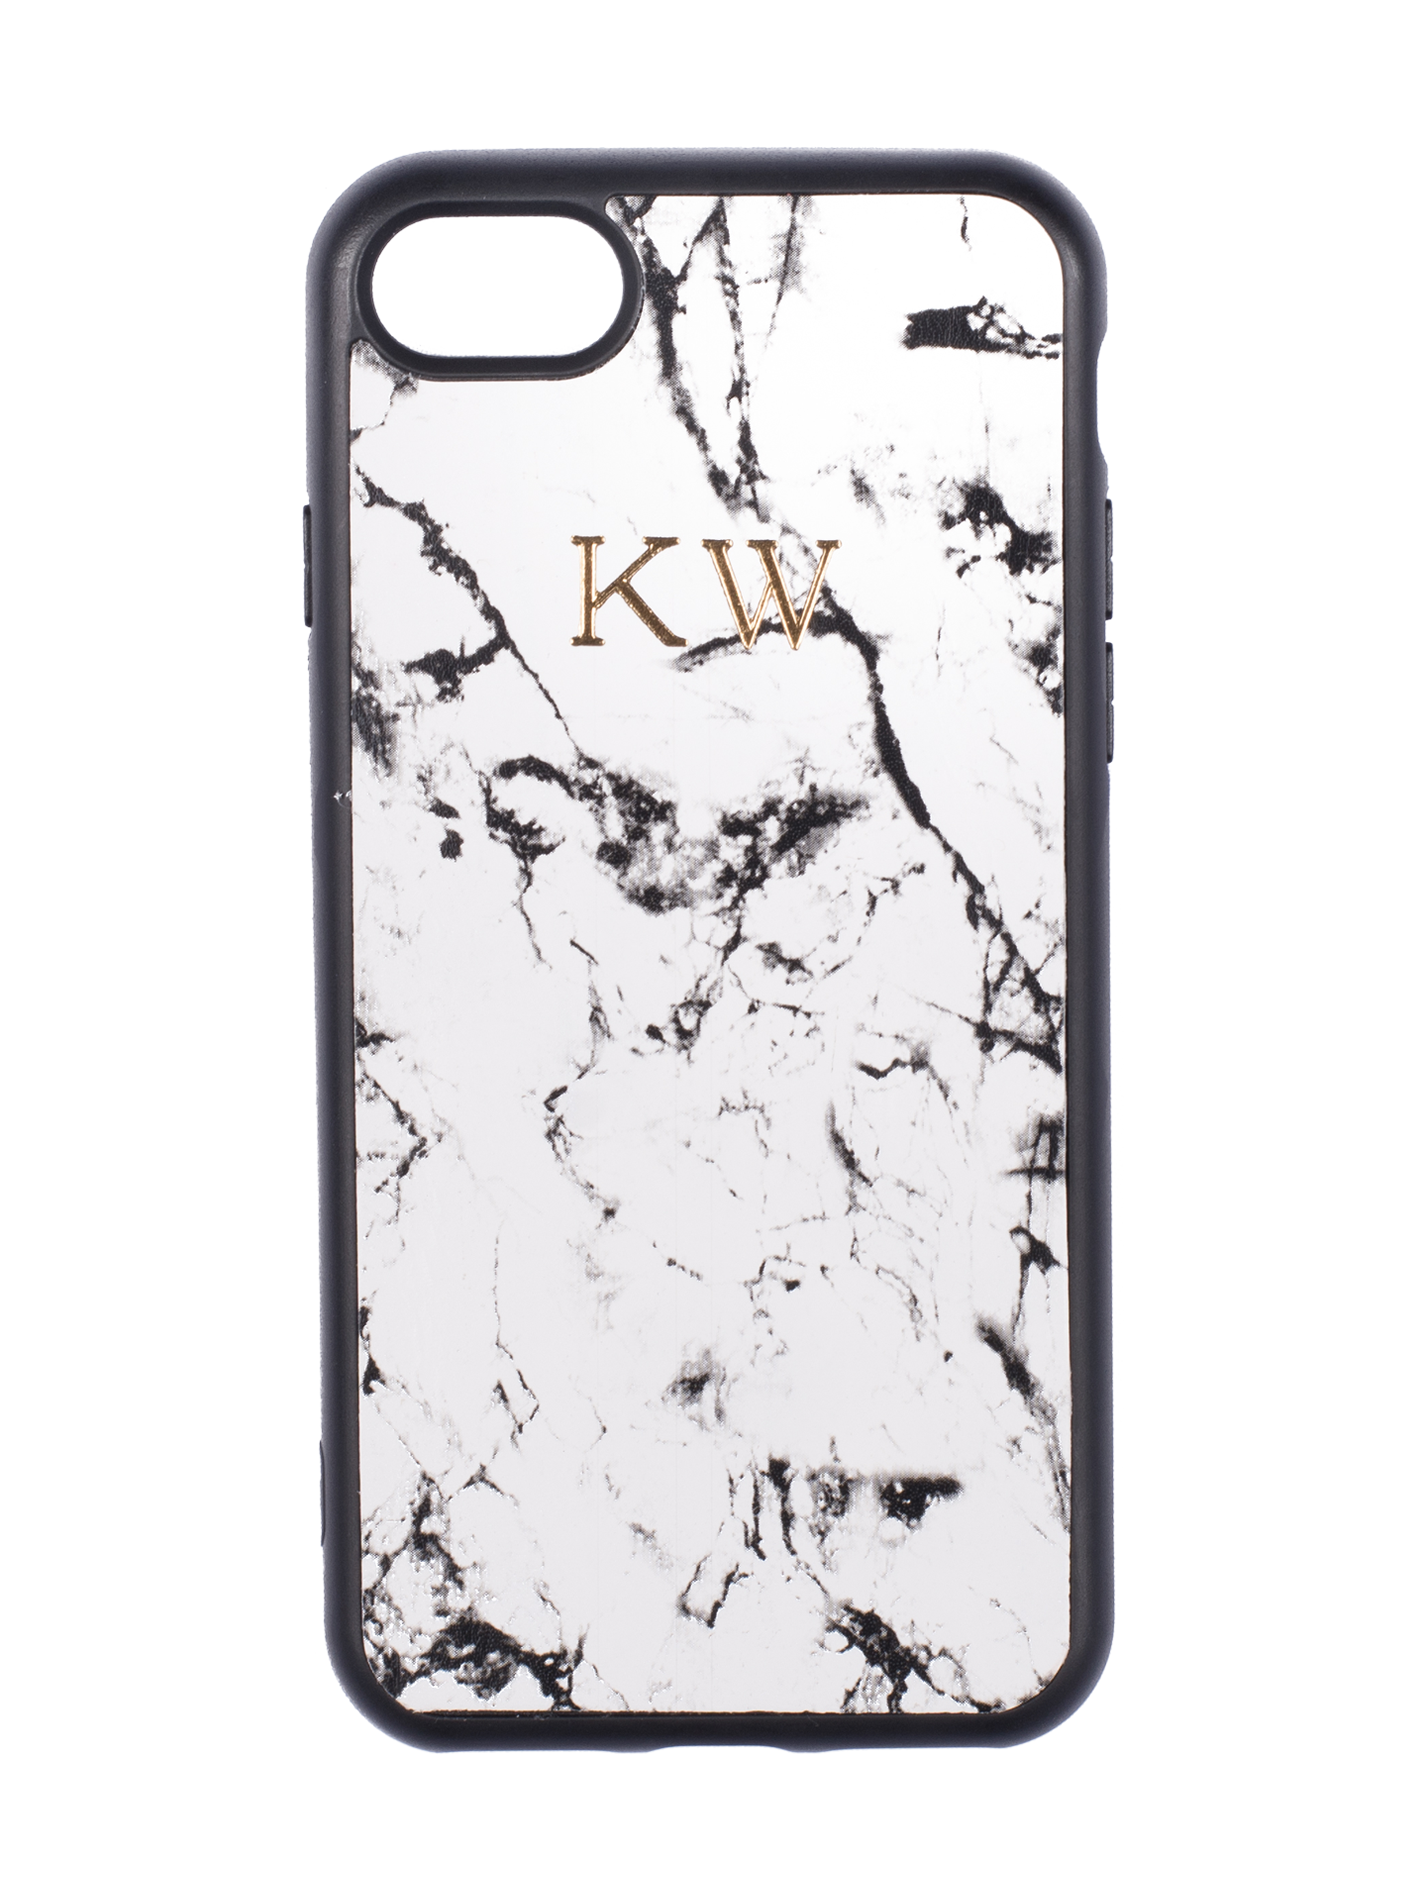 Nappa Leather iPhone Case in Marble Blanc